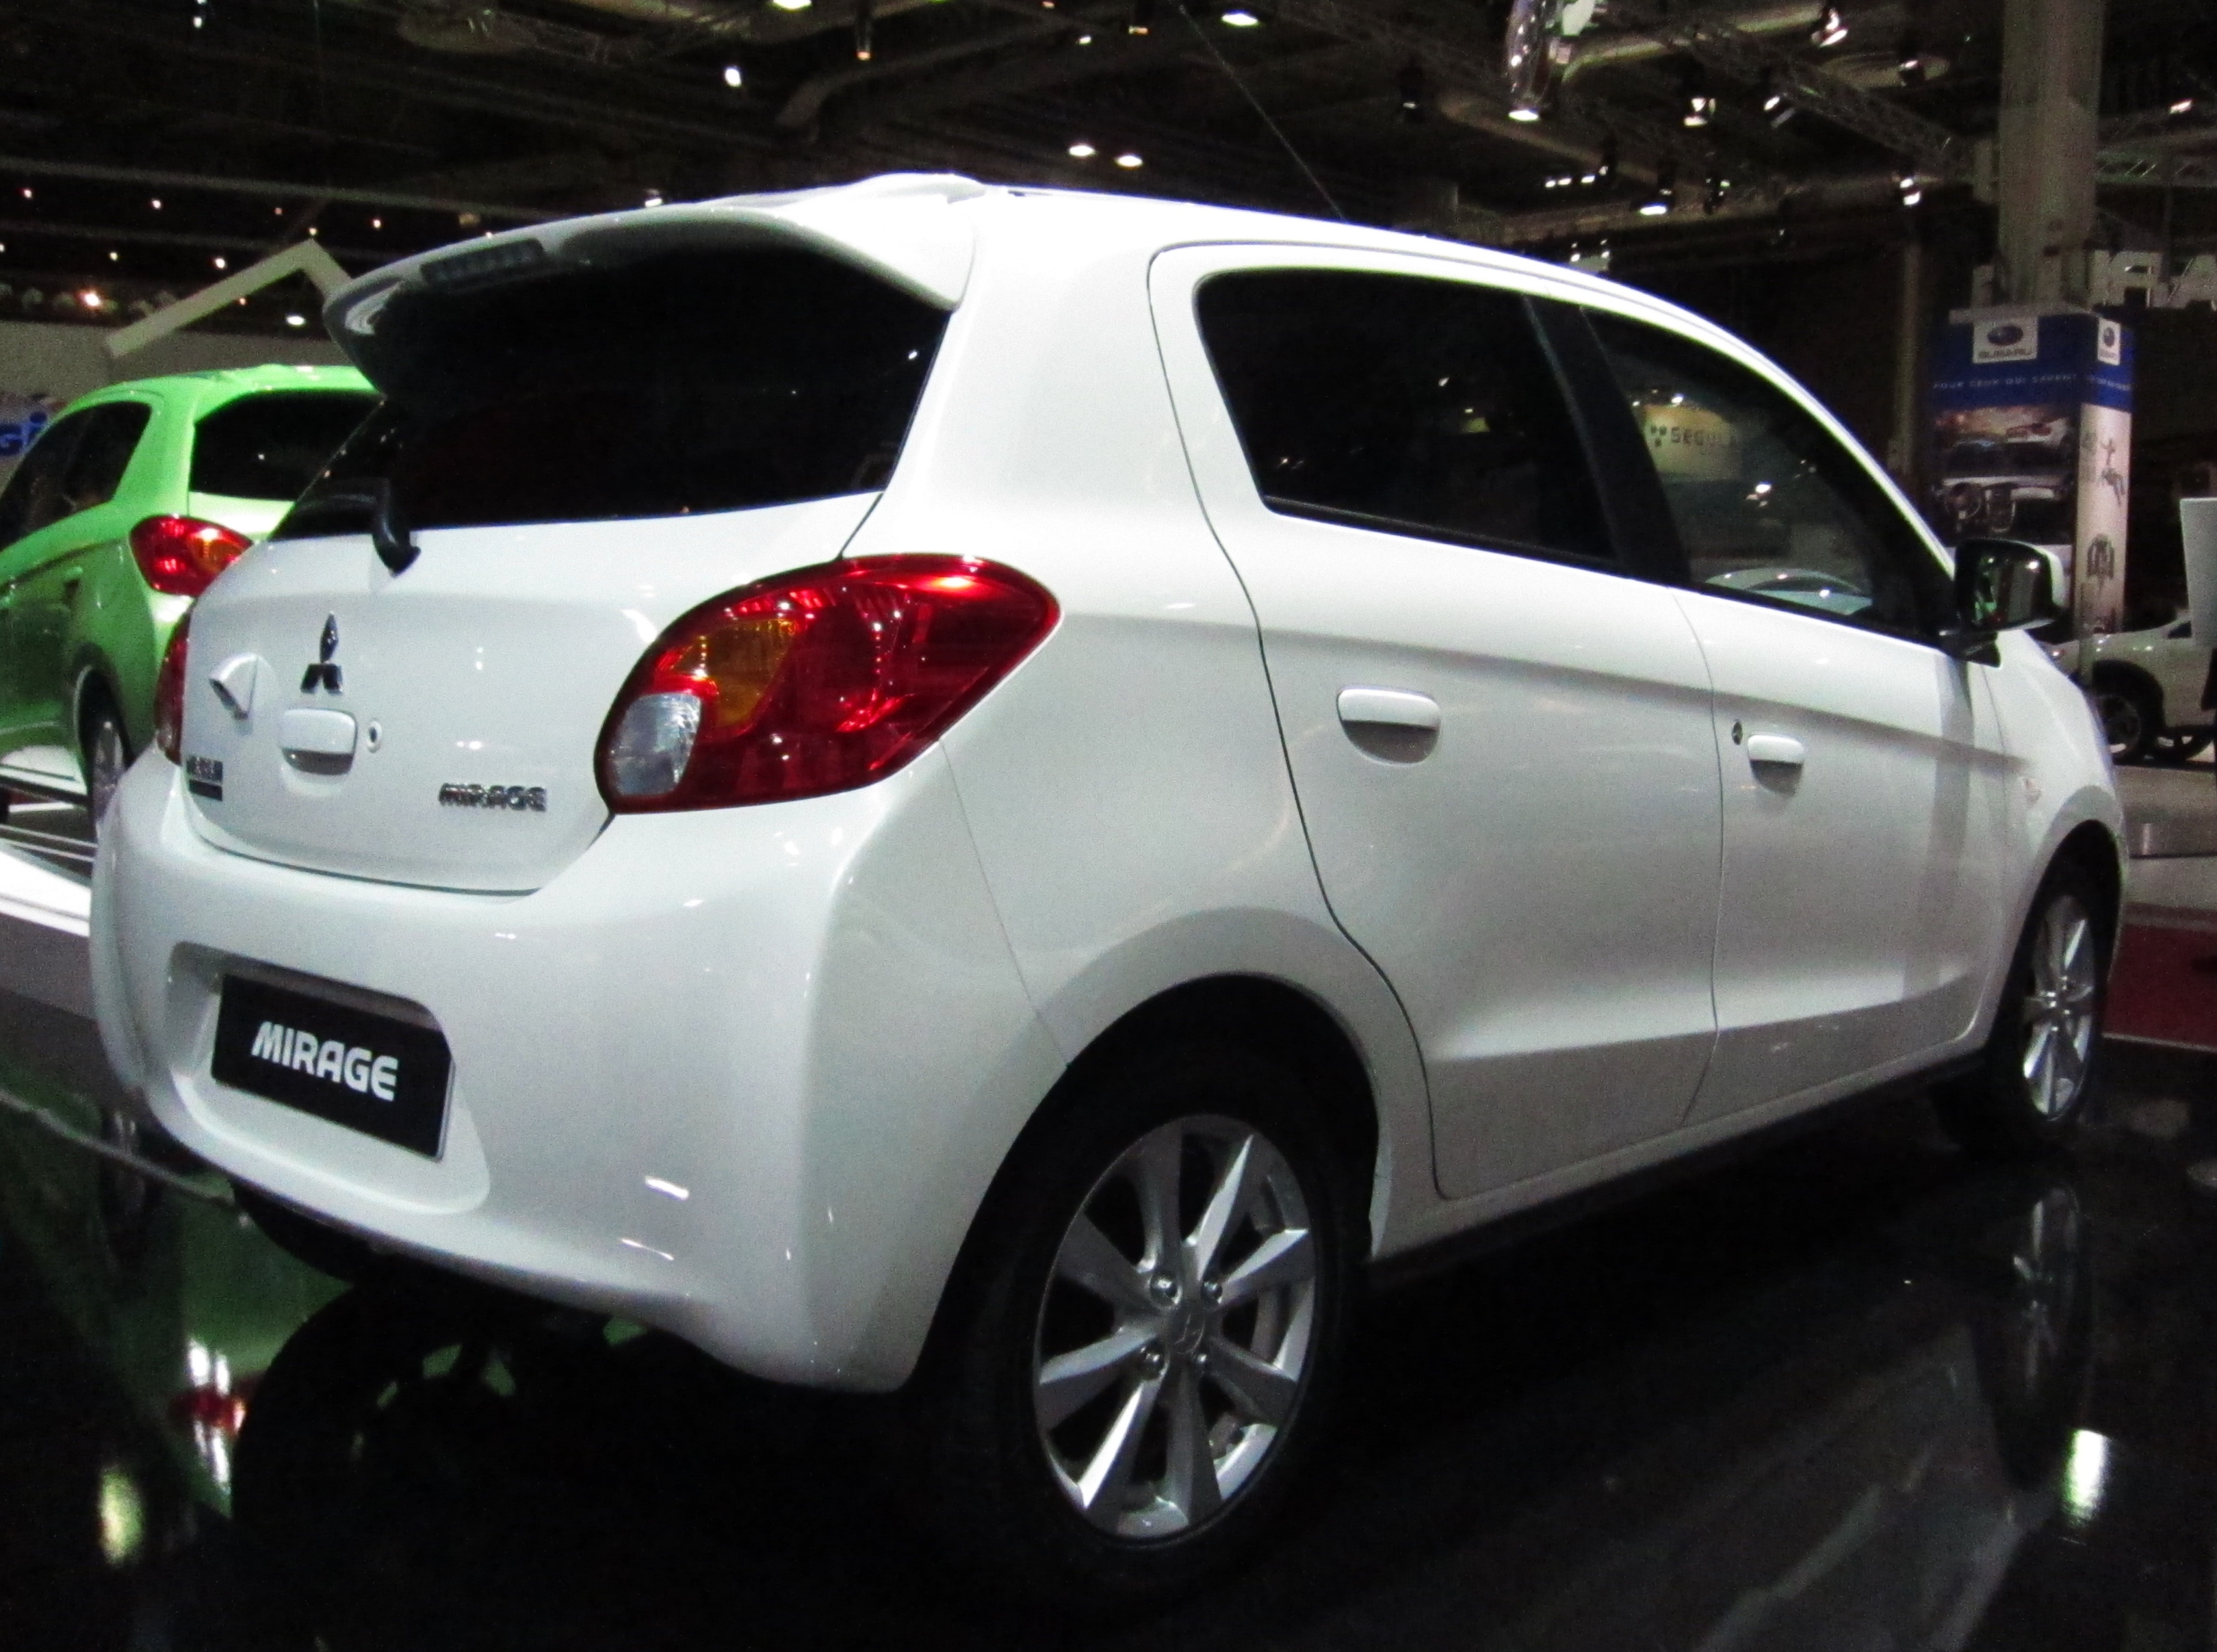 File:Mitsubishi Mirage (rear quarter) white.JPG - Wikimedia Commons